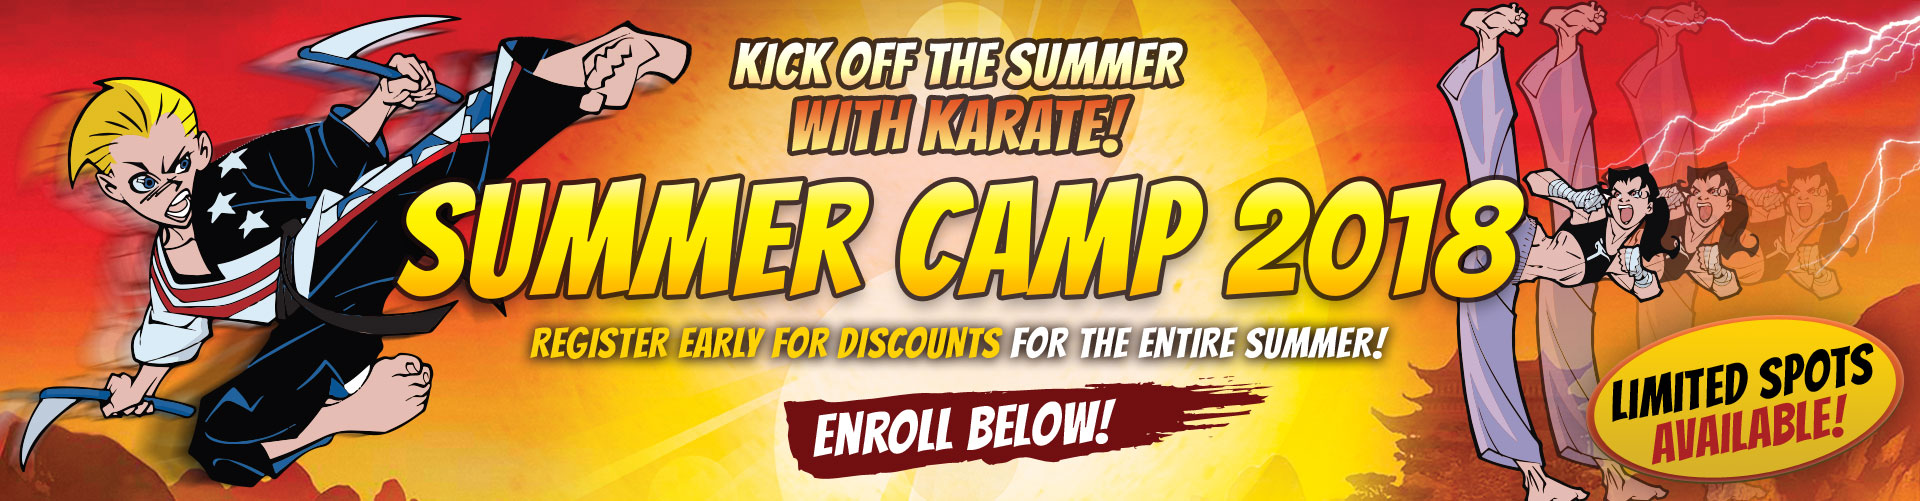 karate-summercamp